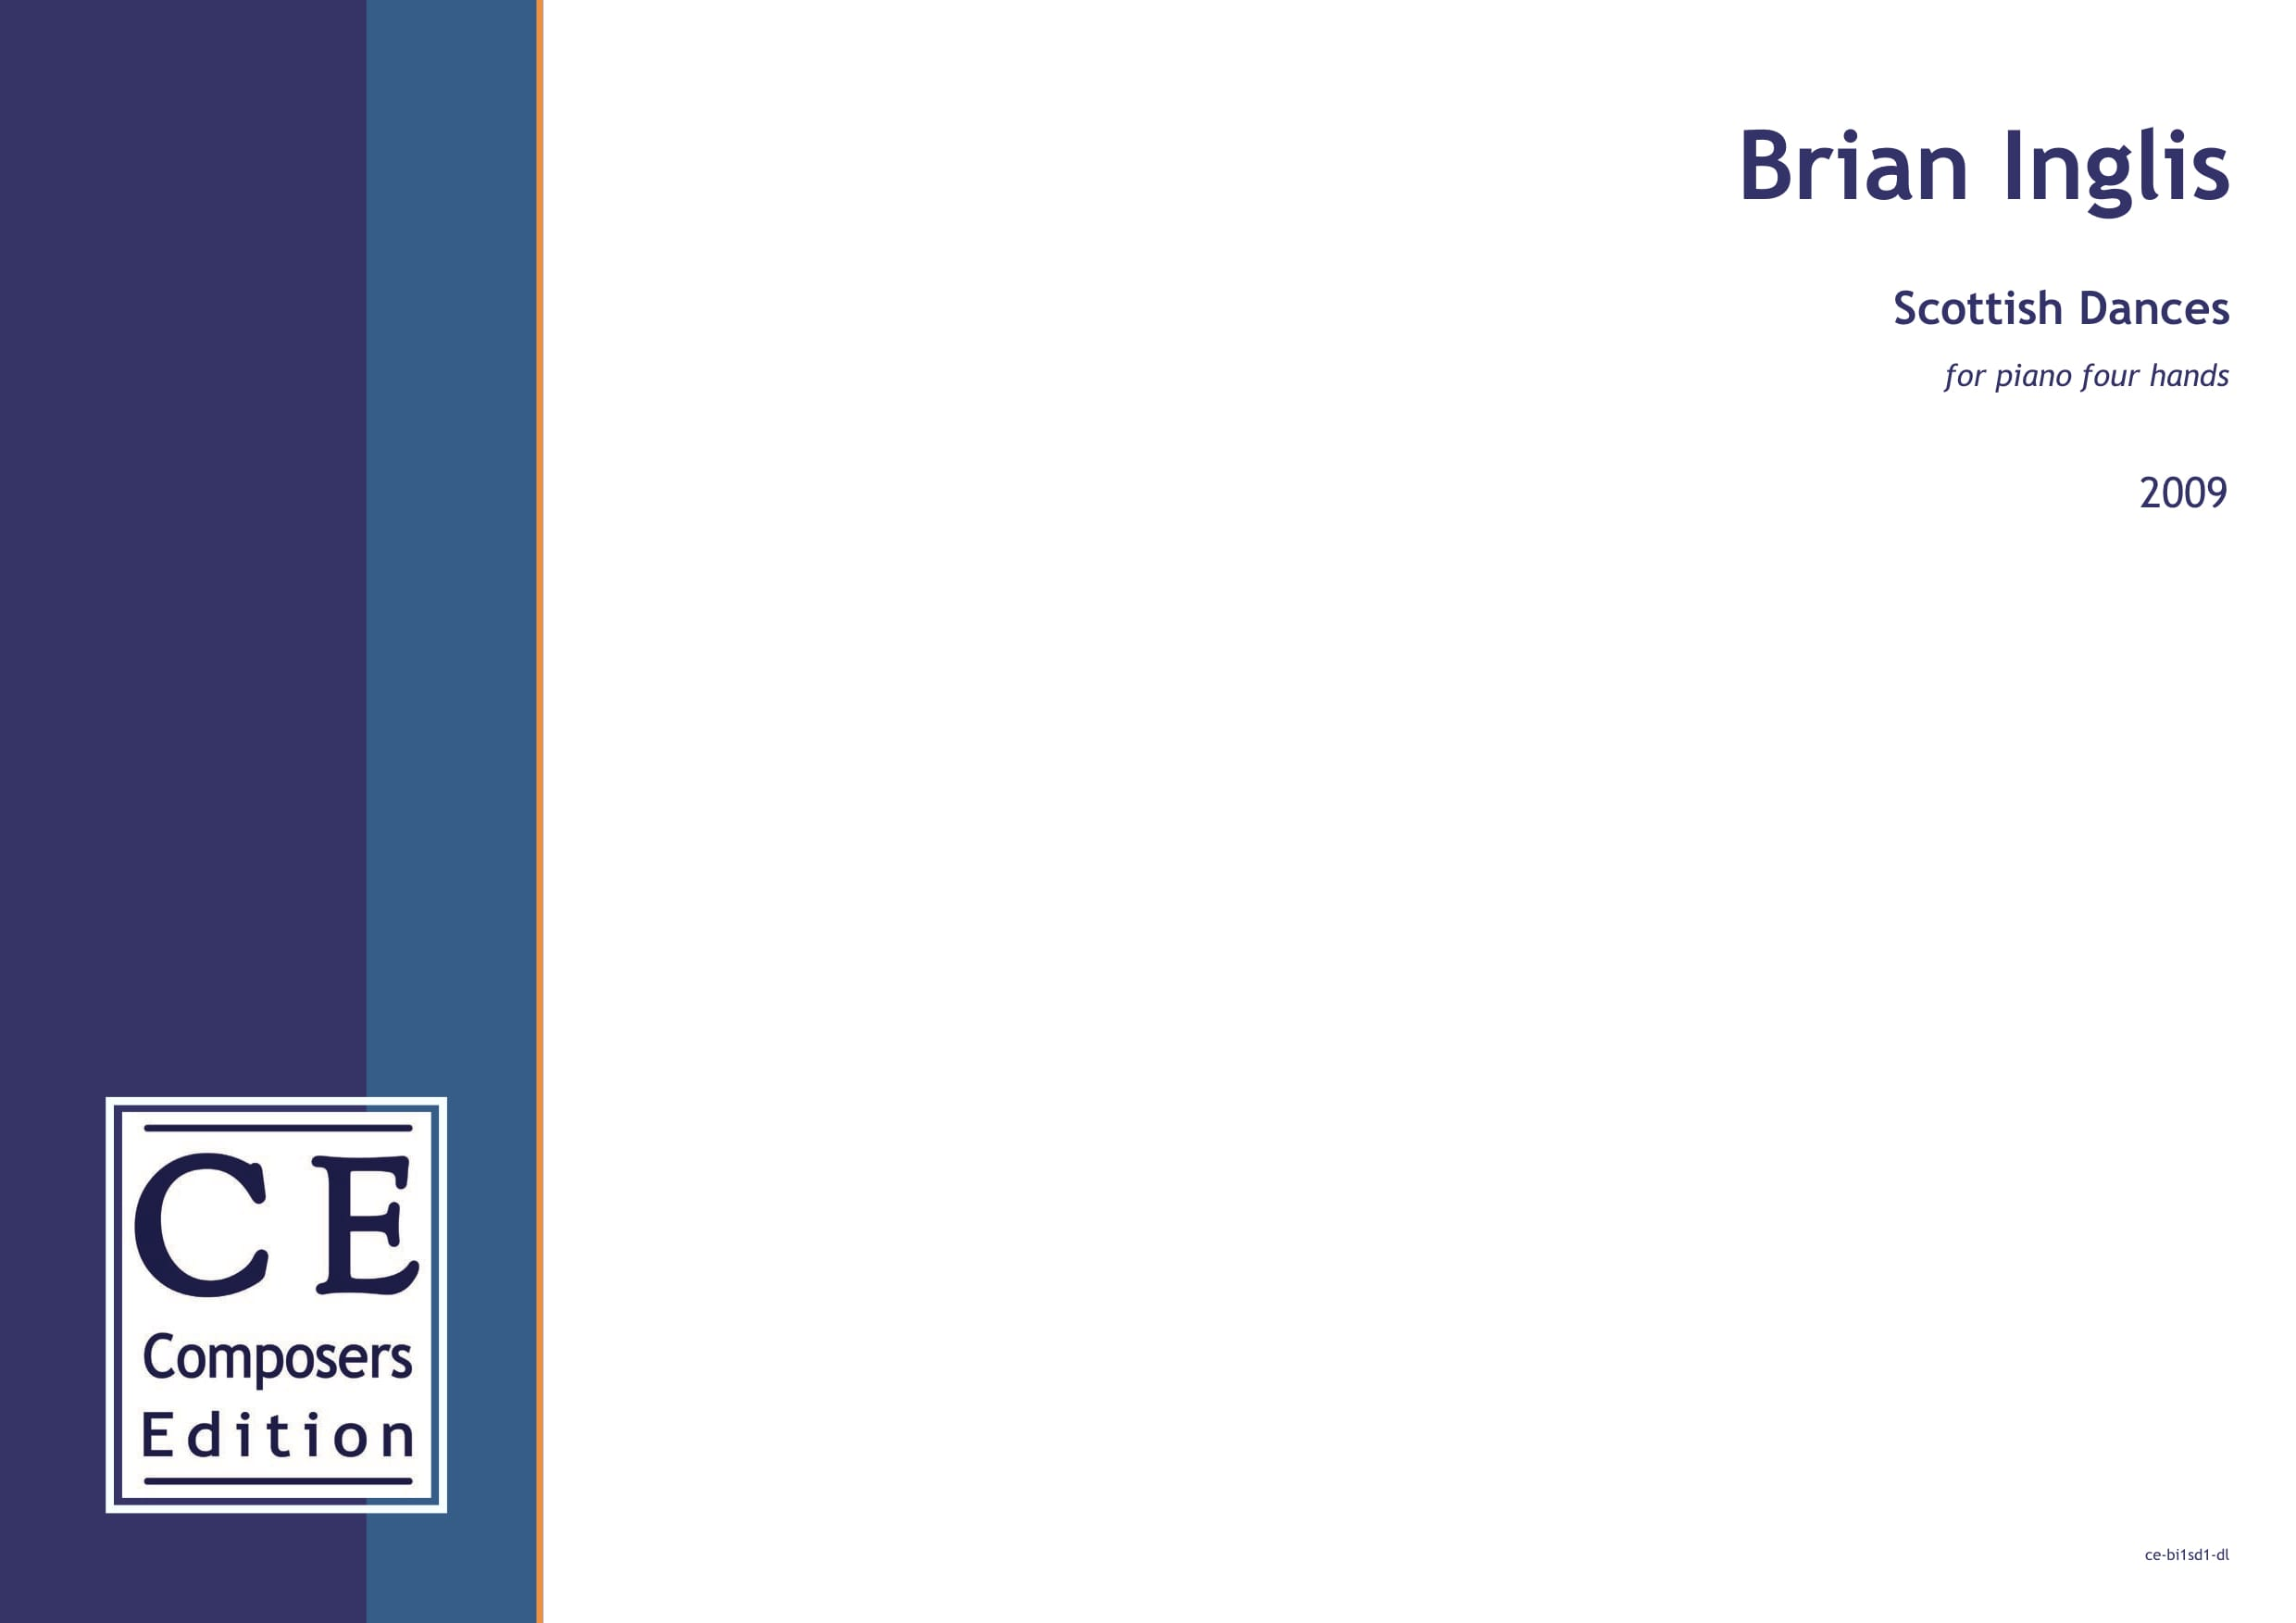 Brian Inglis: Scottish Dances for piano four hands